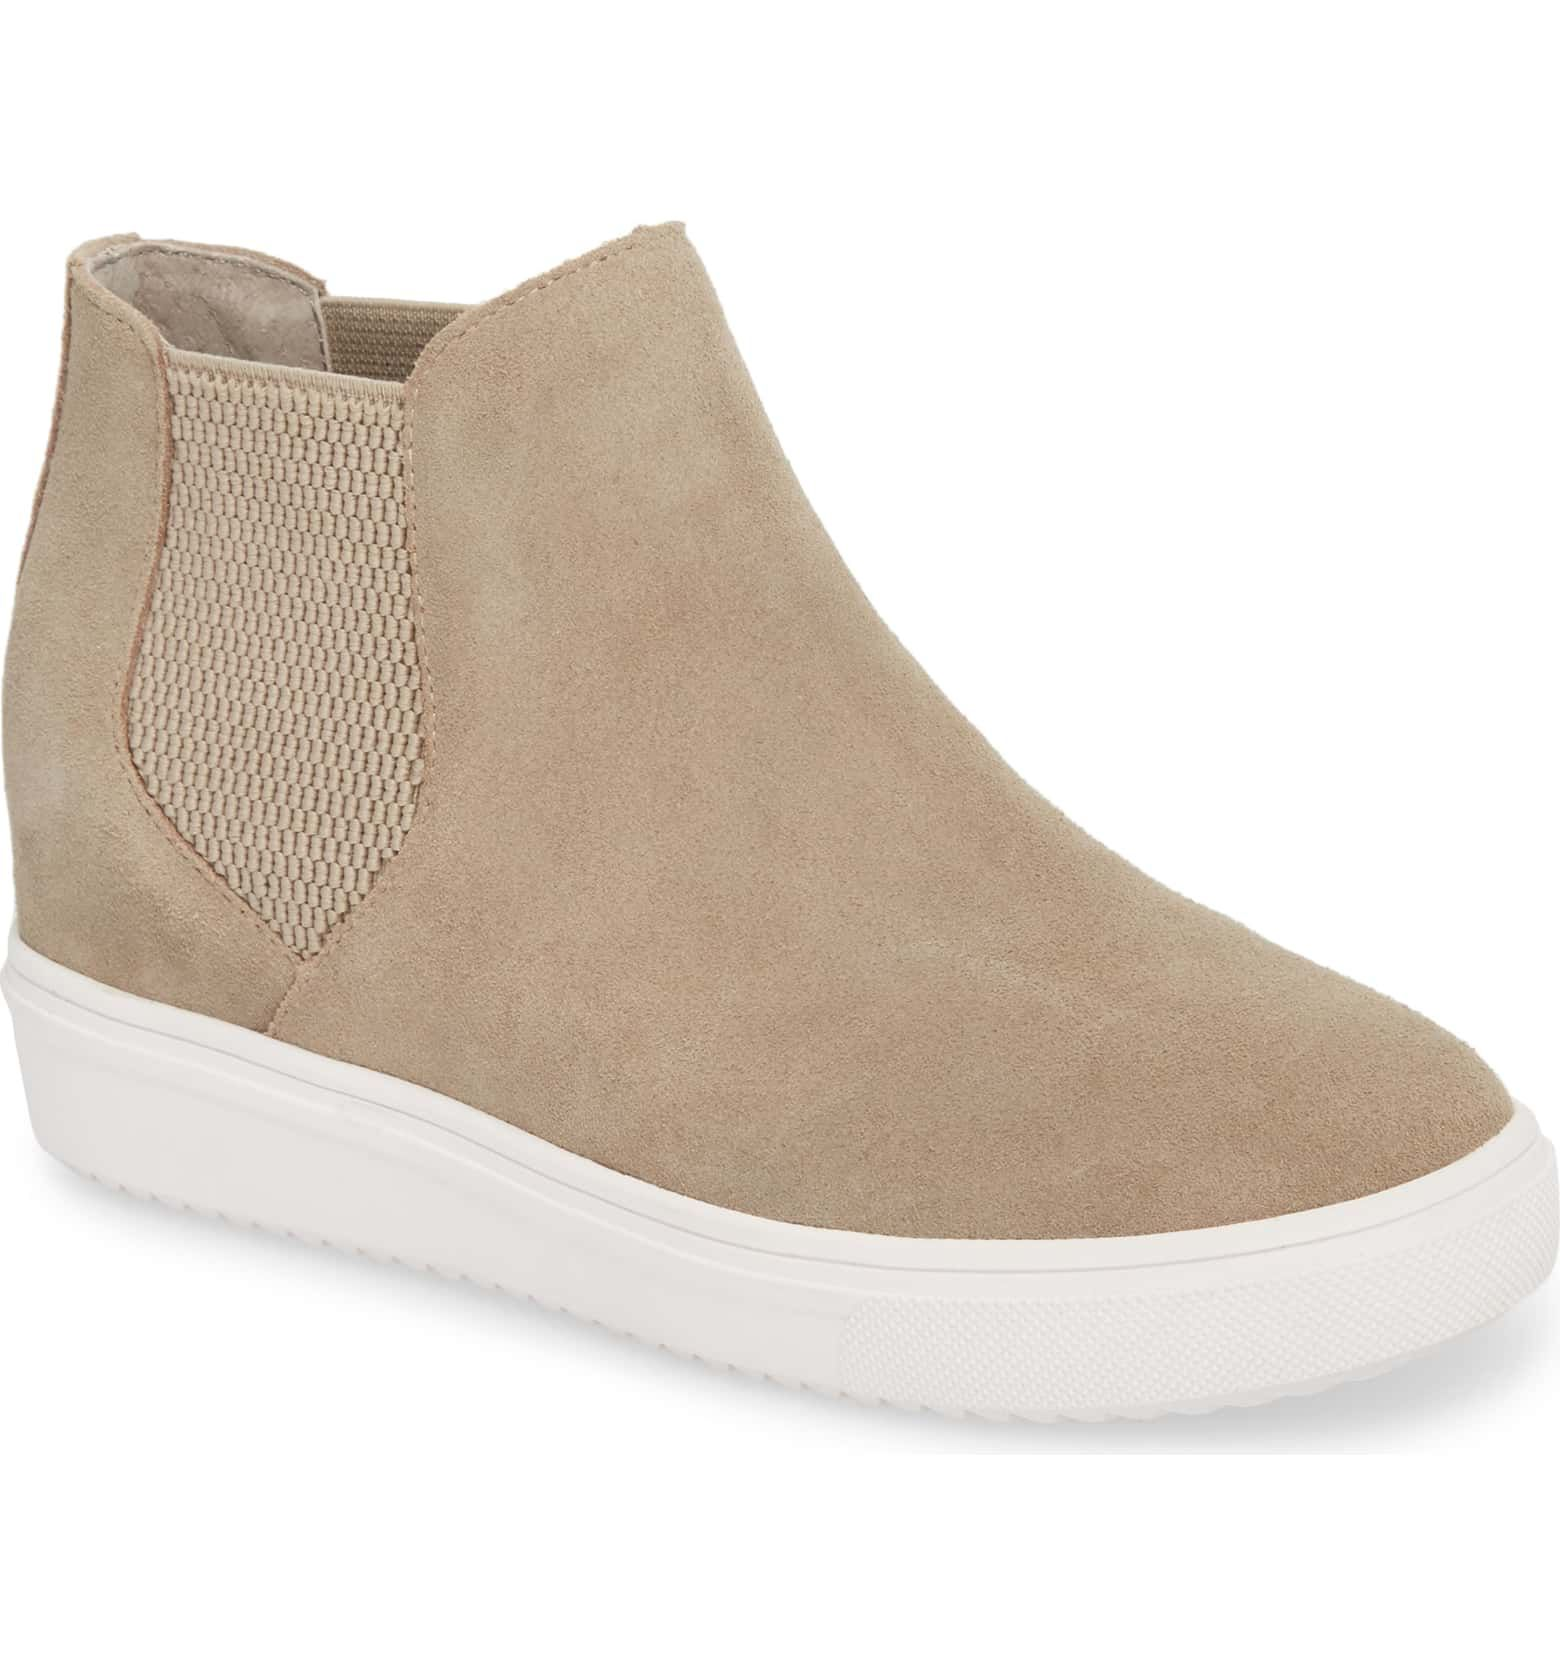 2265a165aaf Sultan Chelsea Wedge Sneaker, Main, color, TAUPE SUEDE | outfits in ...